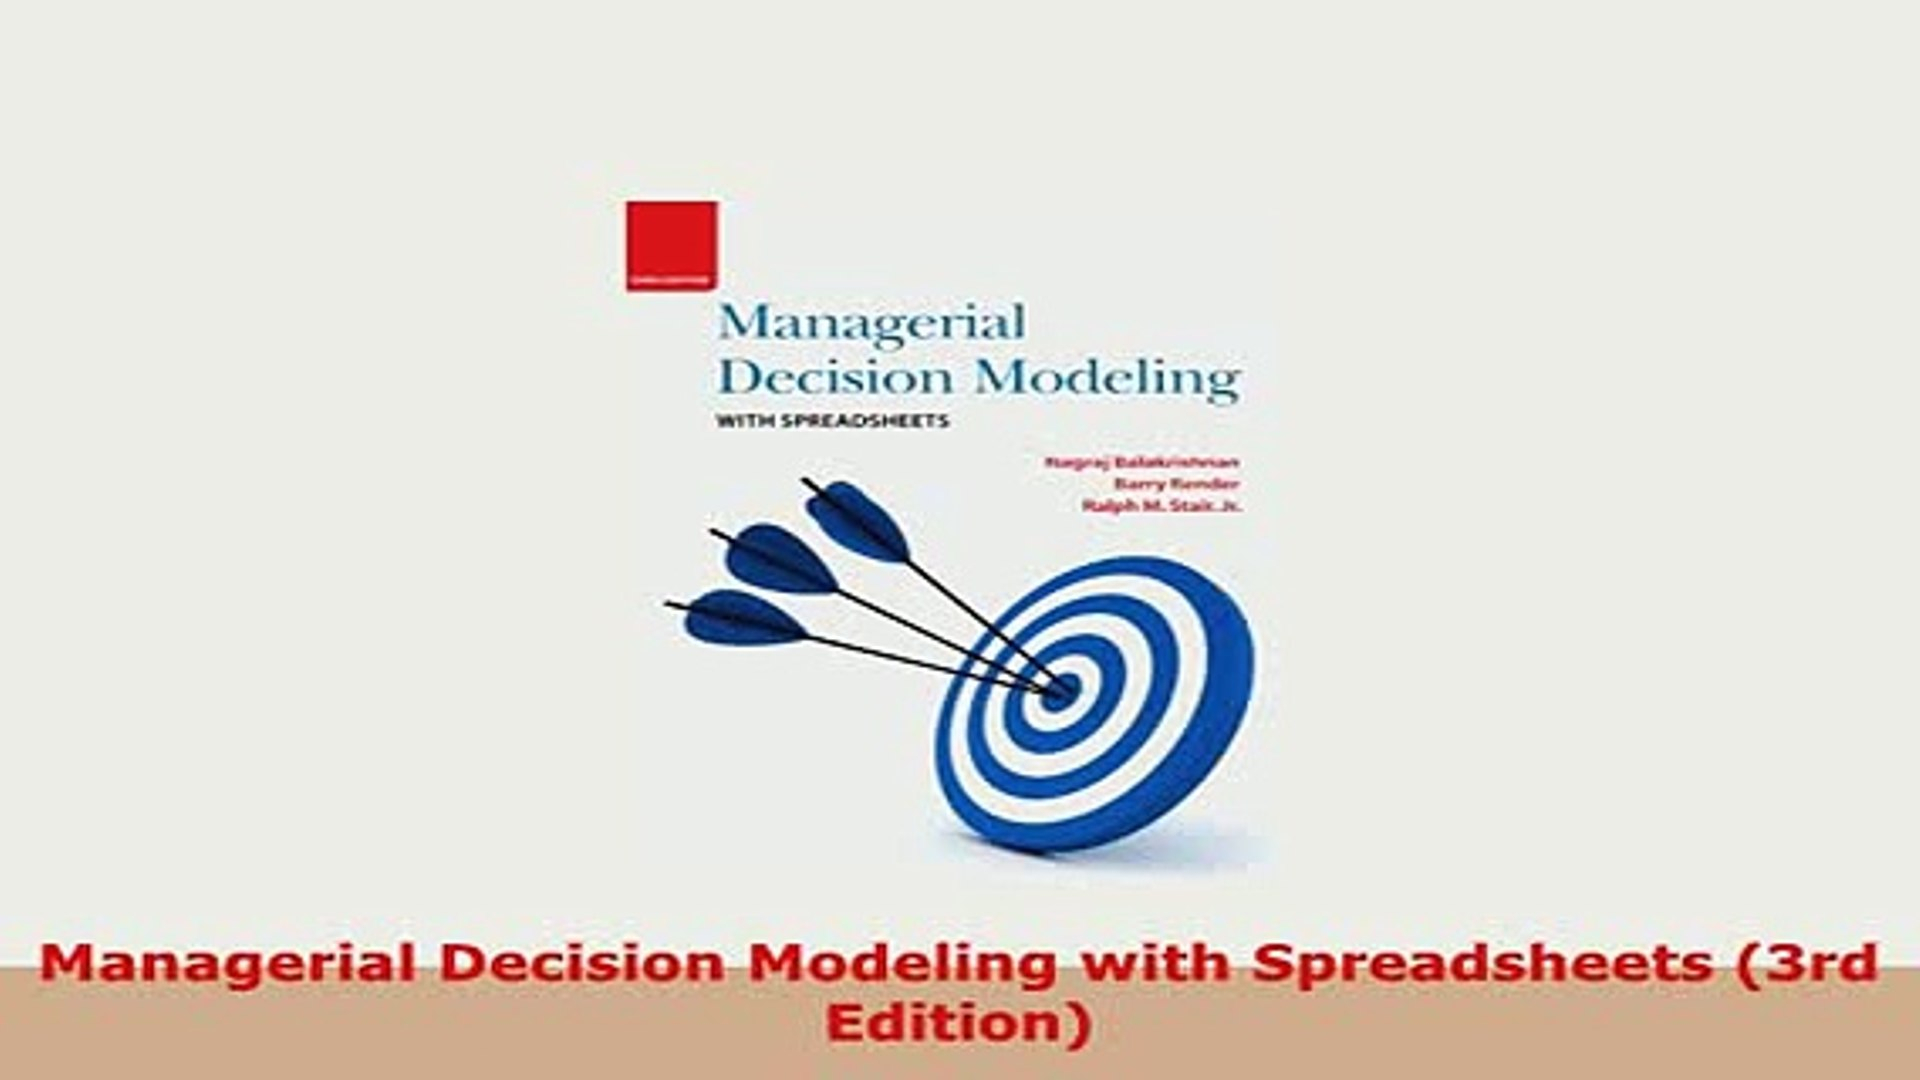 Managerial Decision Modeling With Spreadsheets Third Edition Regarding Pdf Managerial Decision Modeling With Spreadsheets 3Rd Edition Pdf